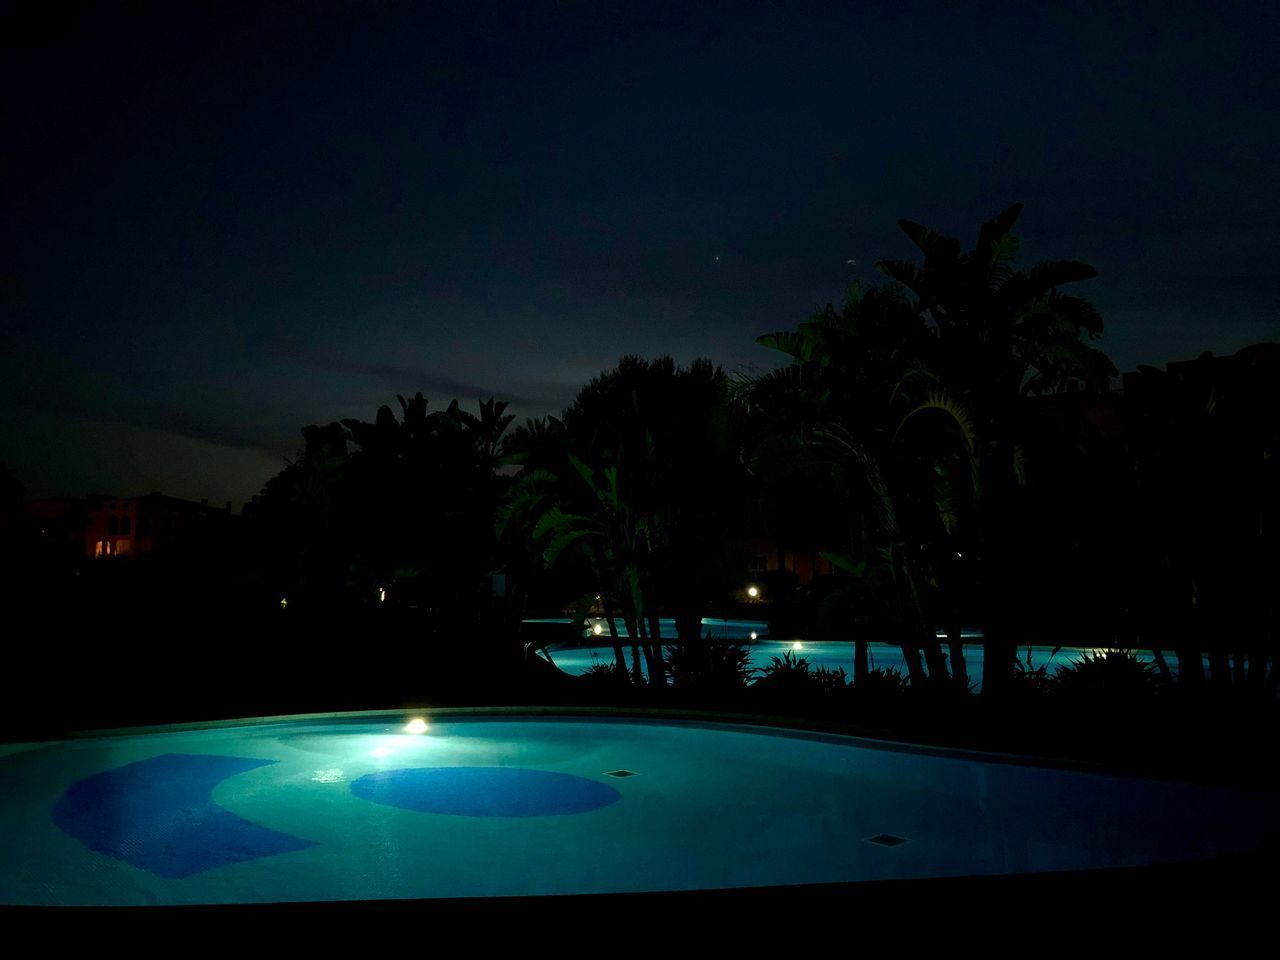 night, tree, palm tree, tropical climate, illuminated, sky, no people, pool, nature, swimming pool, plant, silhouette, water, outdoors, dusk, sport, green color, absence, architecture